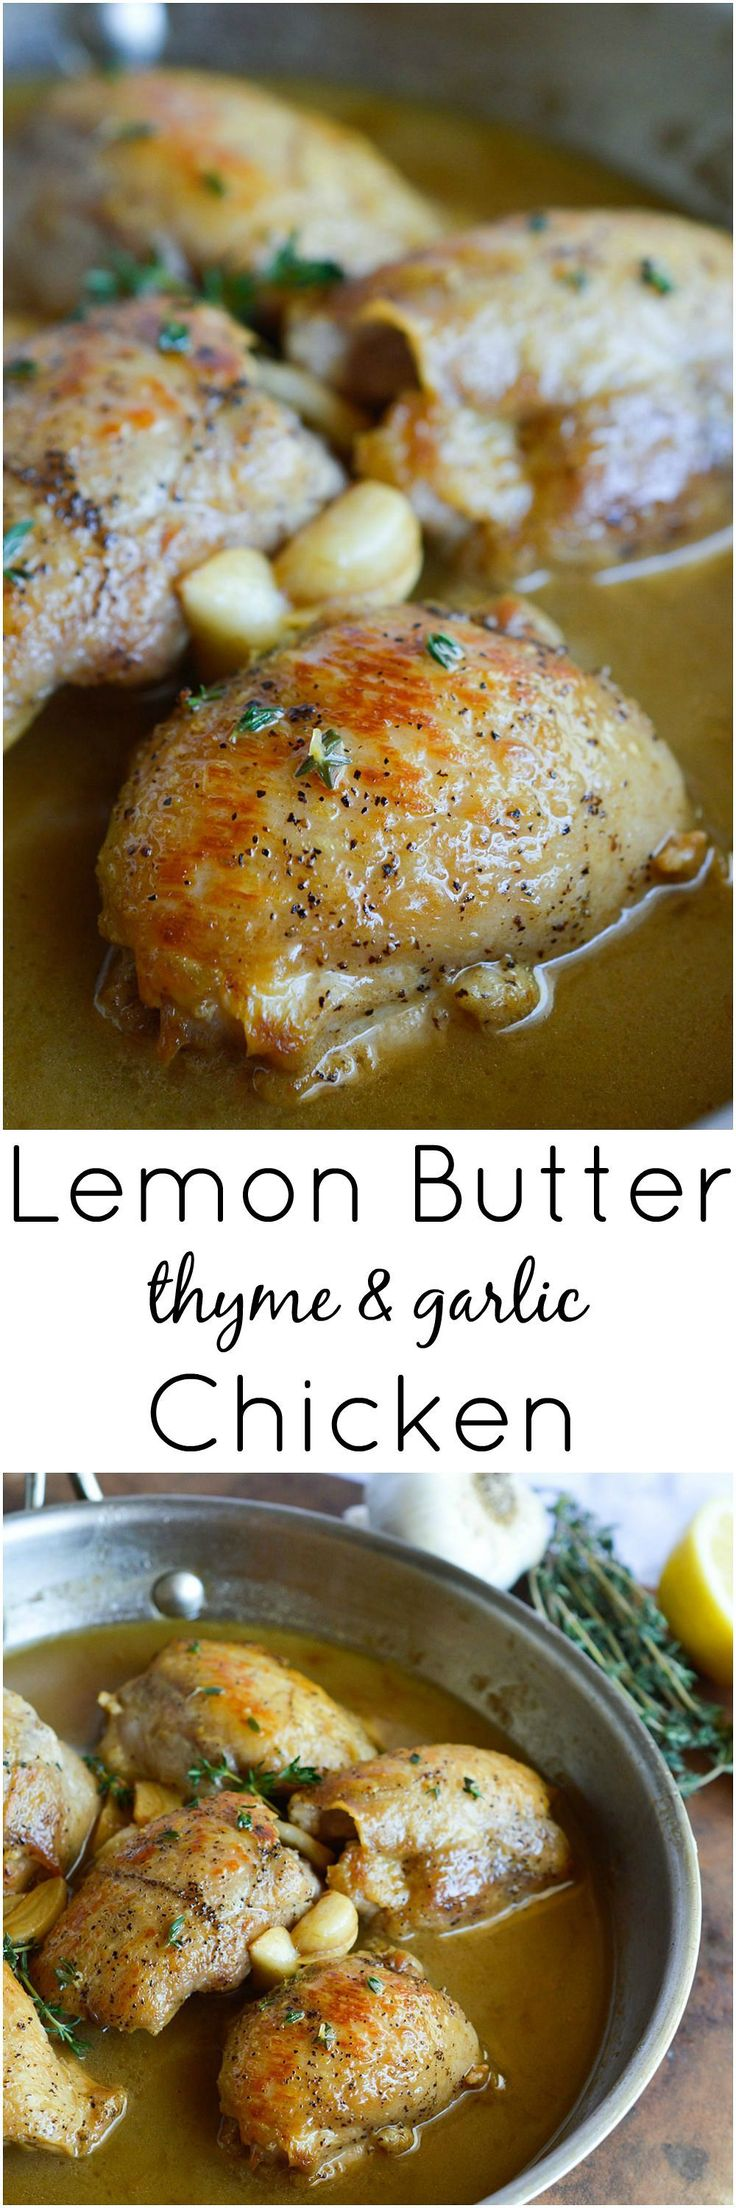 This Lemon Butter Chicken Thigh Recipe is quick, easy and bursting with flavor! Juicy chicken thighs cooked with butter, lemon, thyme and garlic. The perfect one pan weeknight dinner!